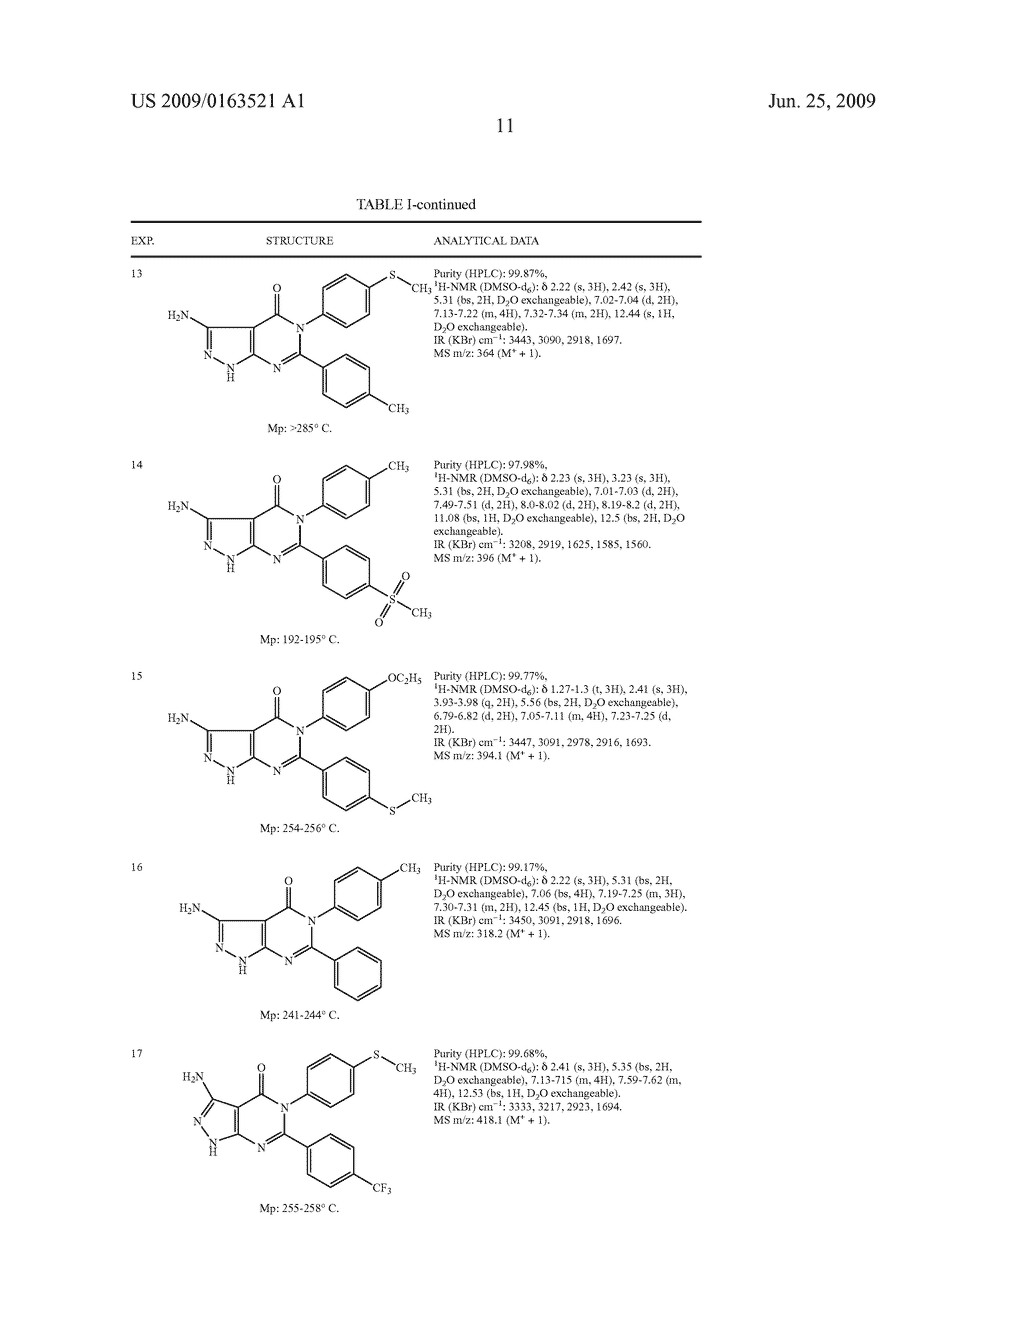 Novel Pyrazolopyrimidinone Derivatives - diagram, schematic, and image 12